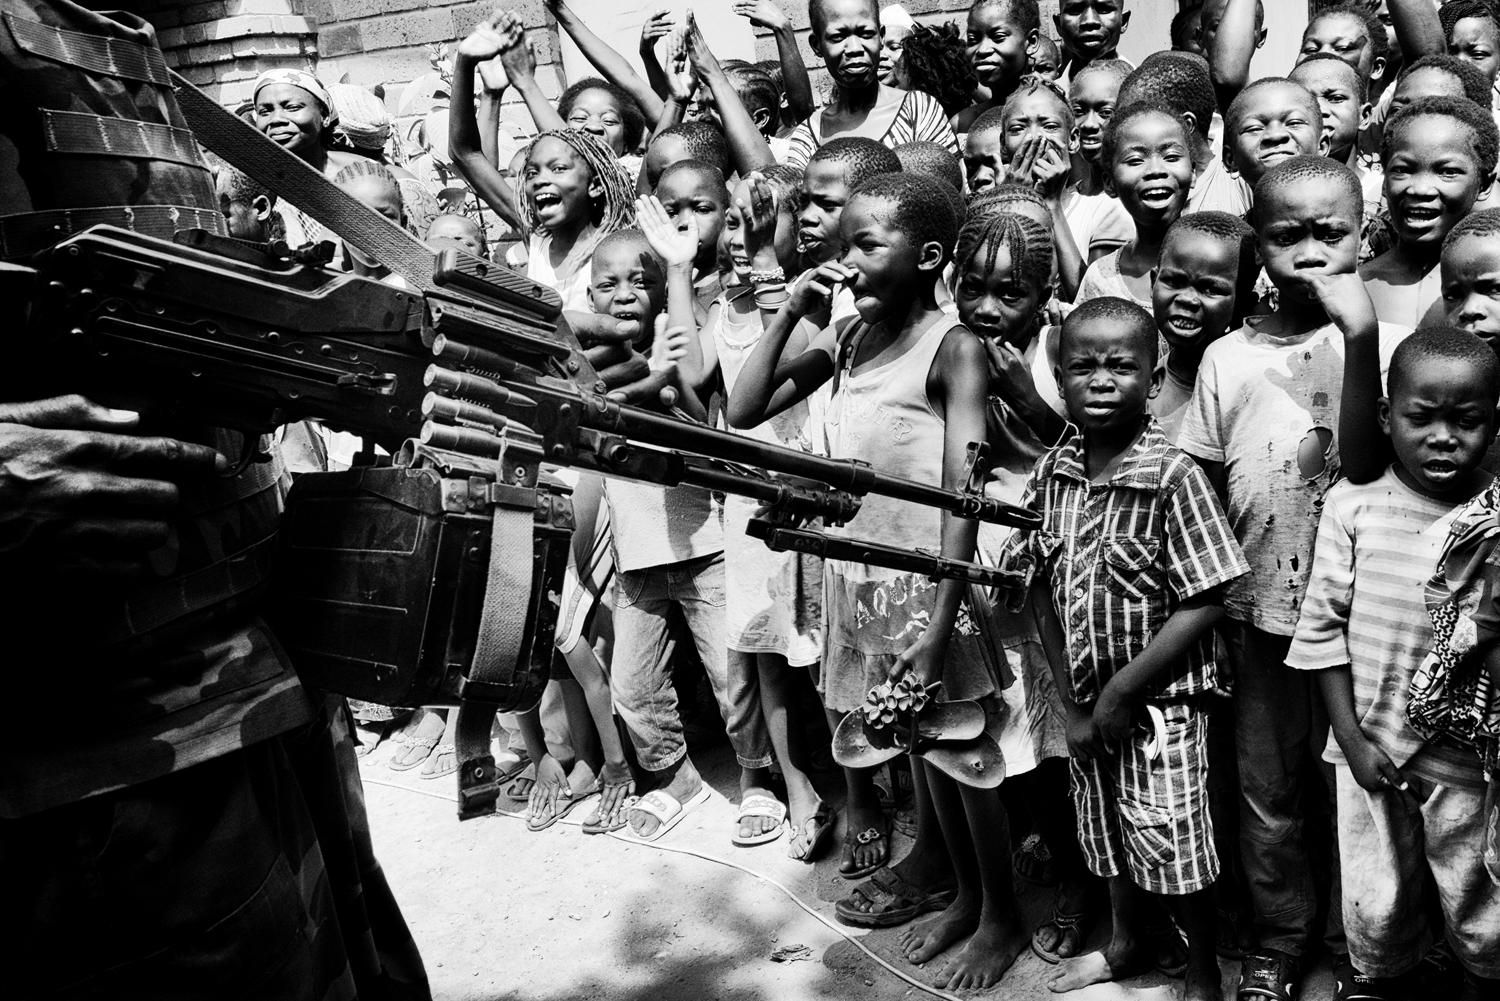 Rwandan soldiers contain a crowd of children at a refugee camp during a visit by interim President Catherine Samba-Panza. Jan. 31, 2014.